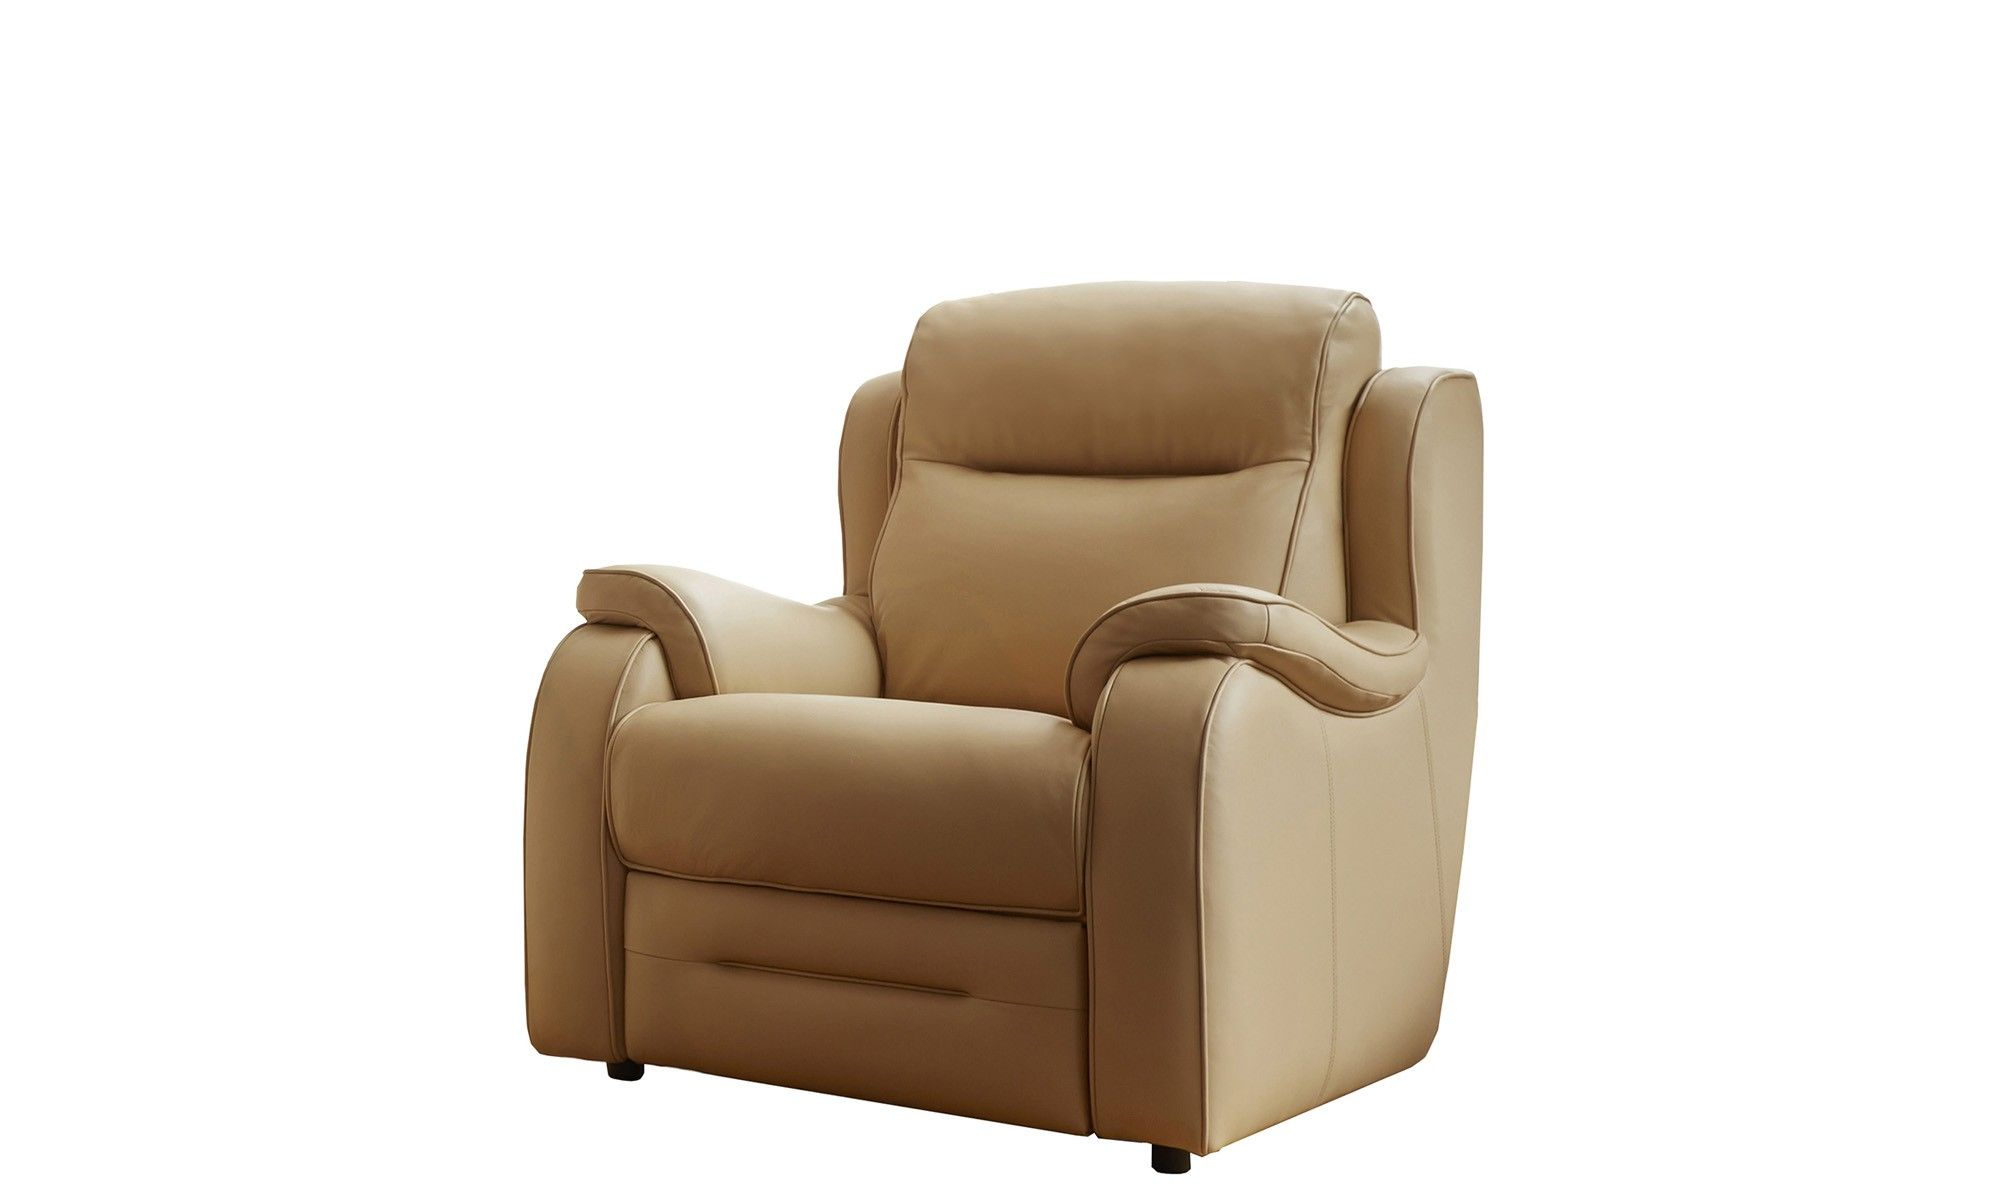 Peachy Parker Knoll Boston Leather Armchair Manual Recliner In Pdpeps Interior Chair Design Pdpepsorg